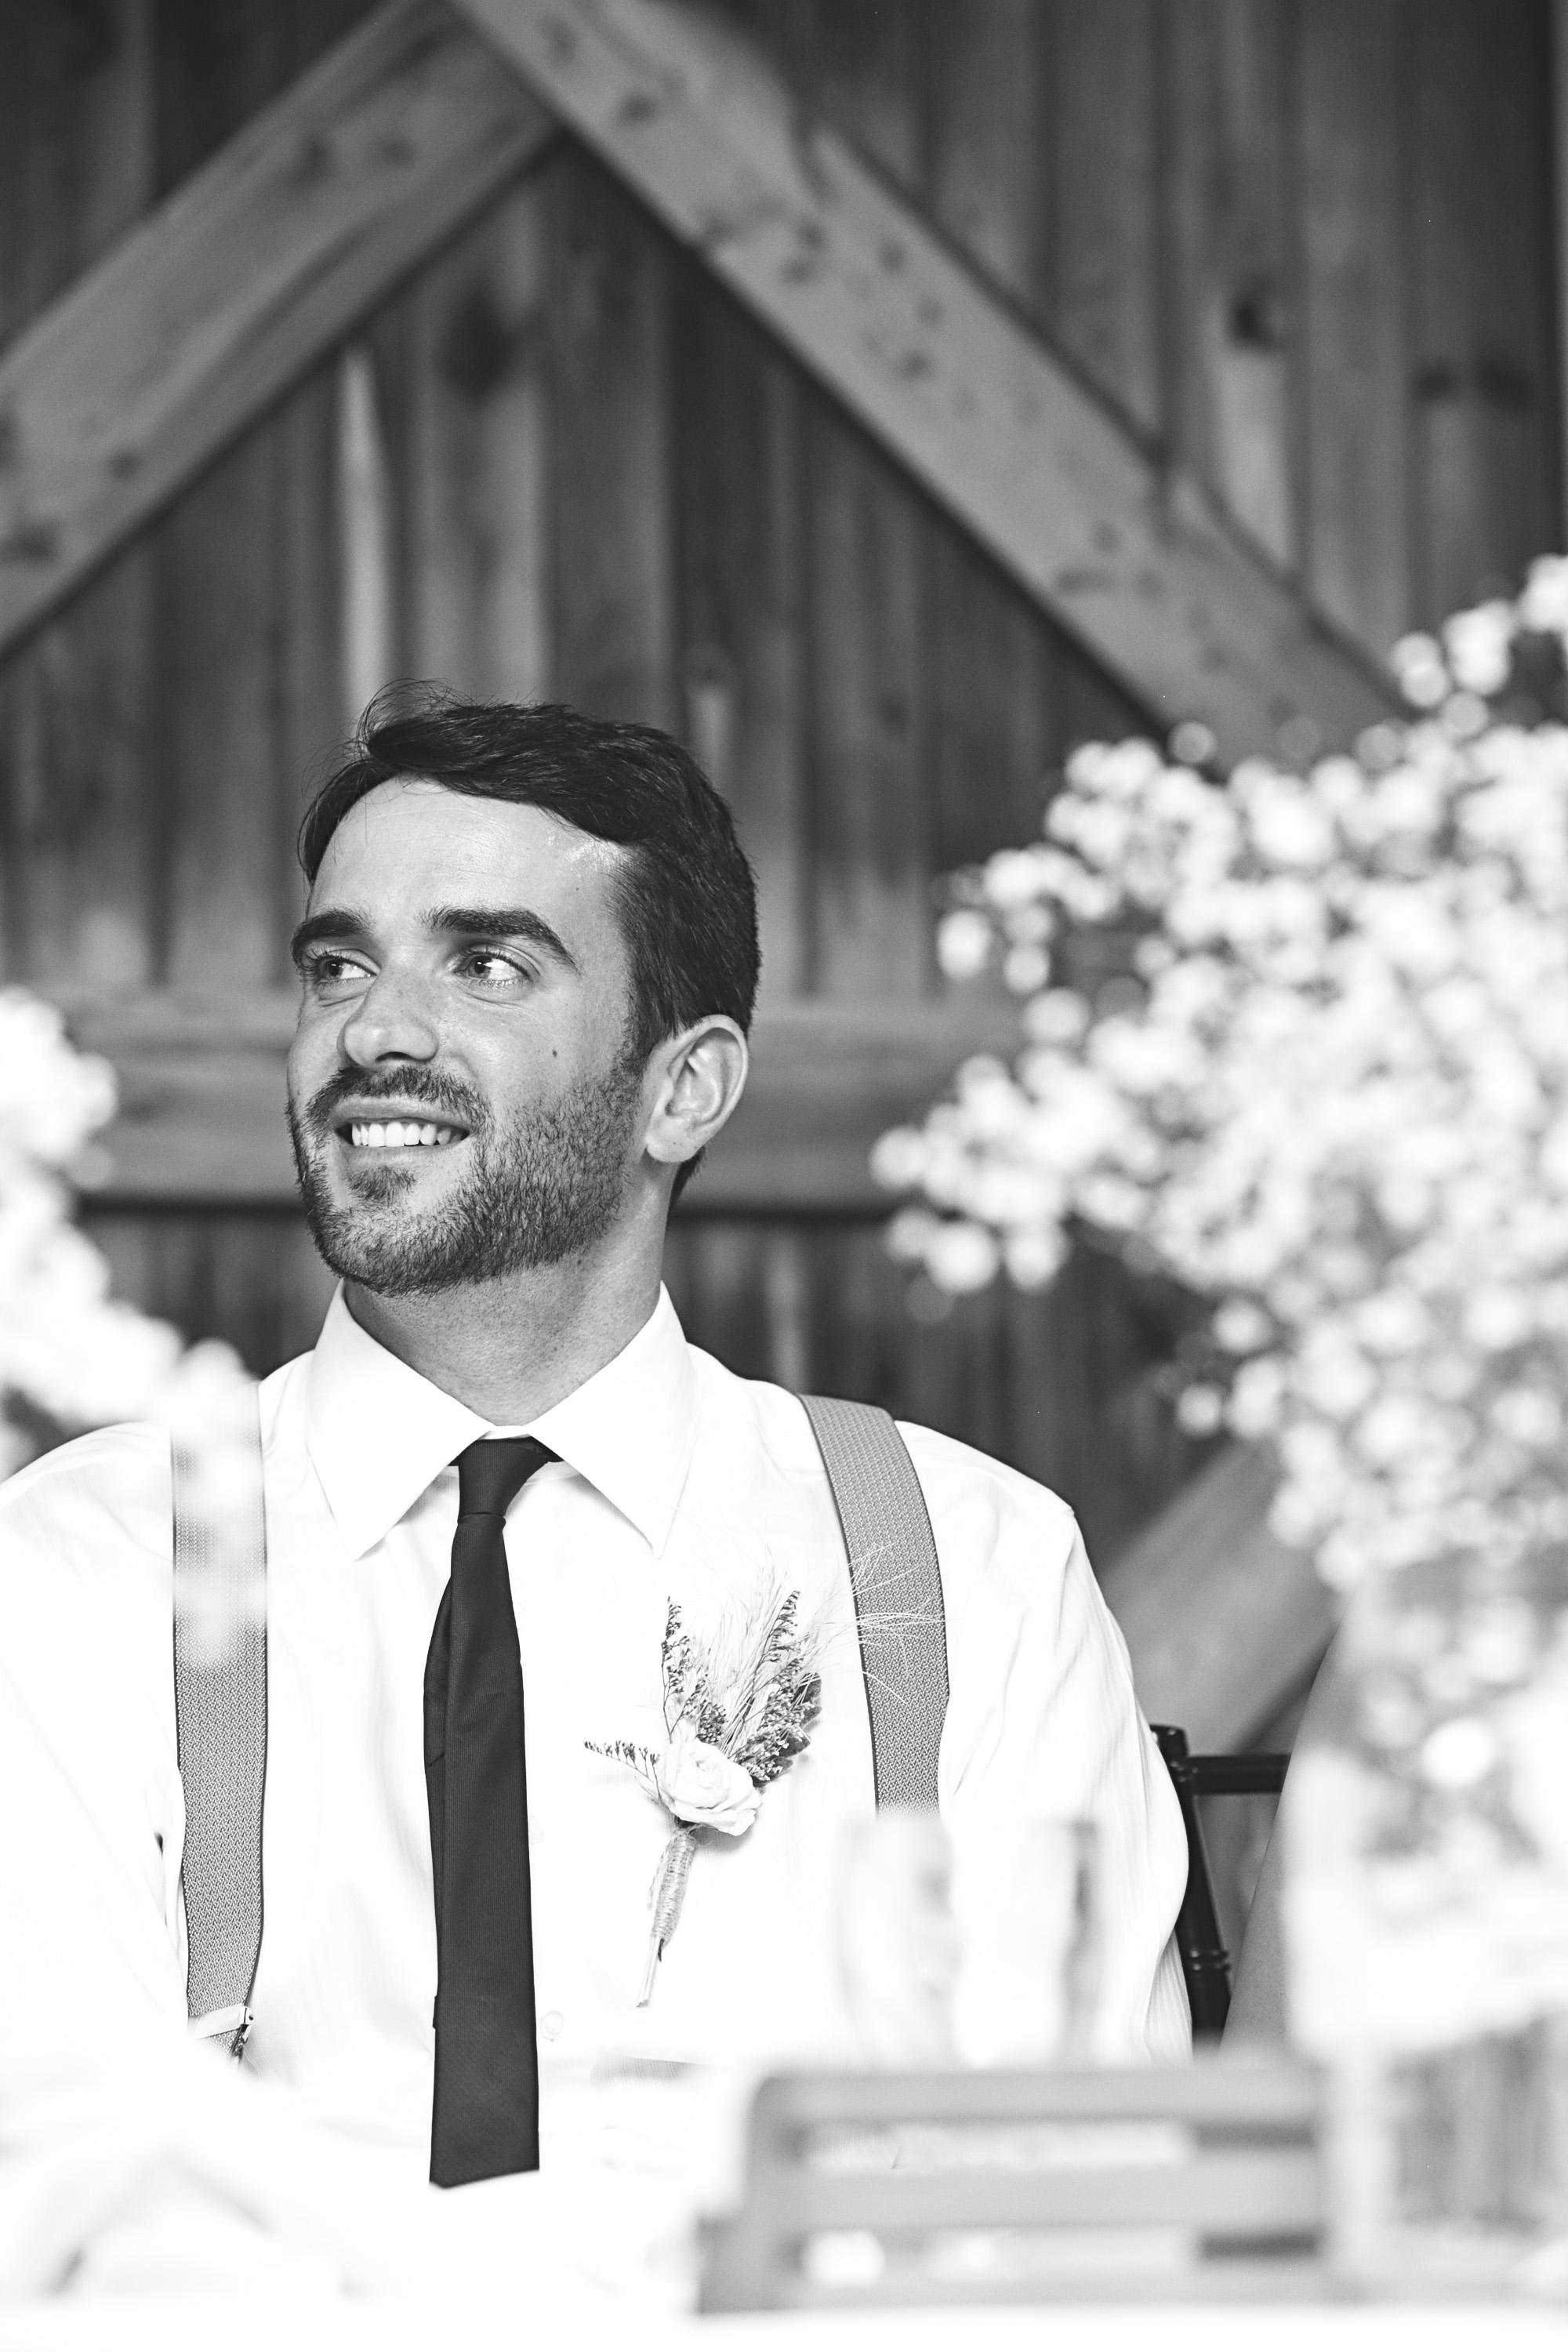 Ball's Falls wedding photographed by Niagara wedding photographer Brittany Williams www.brittanywilliams.ca